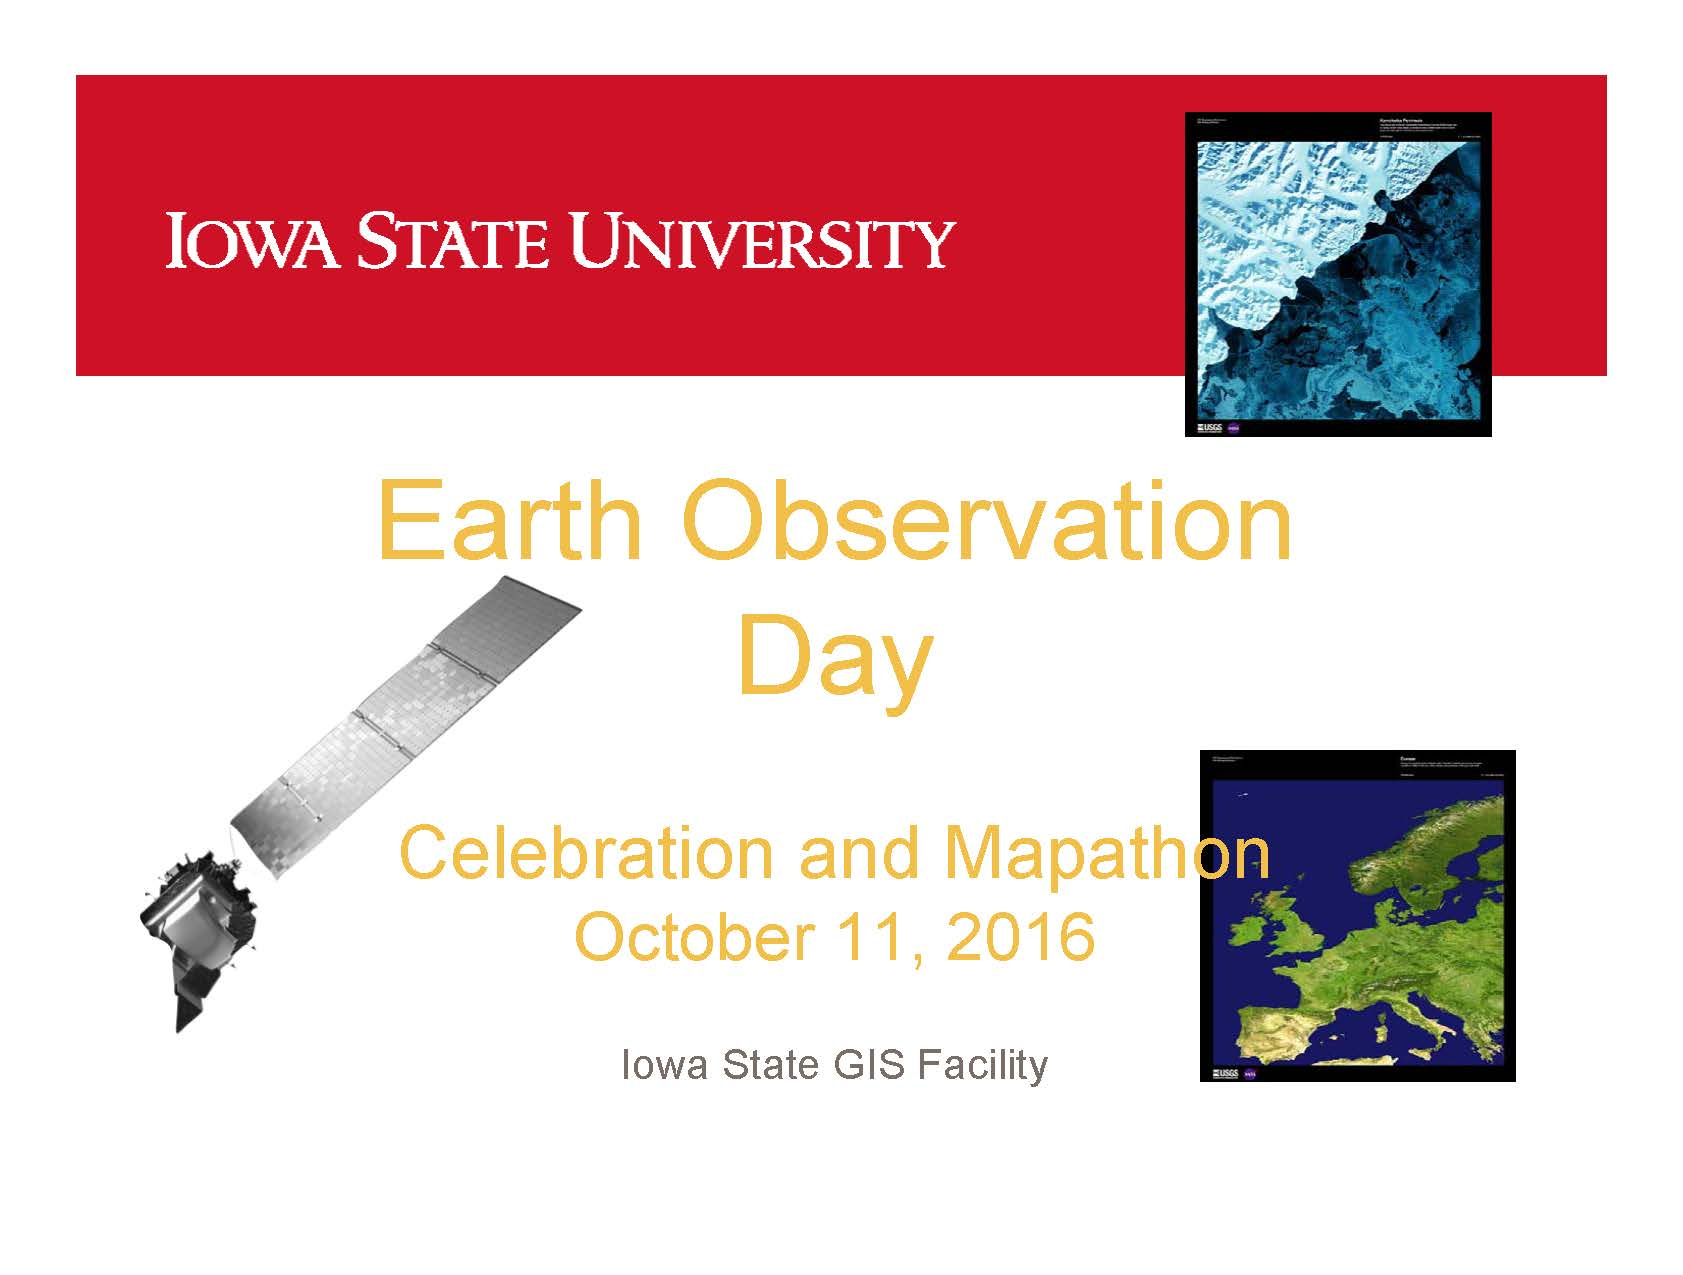 earth-observation-day-10_11_2016